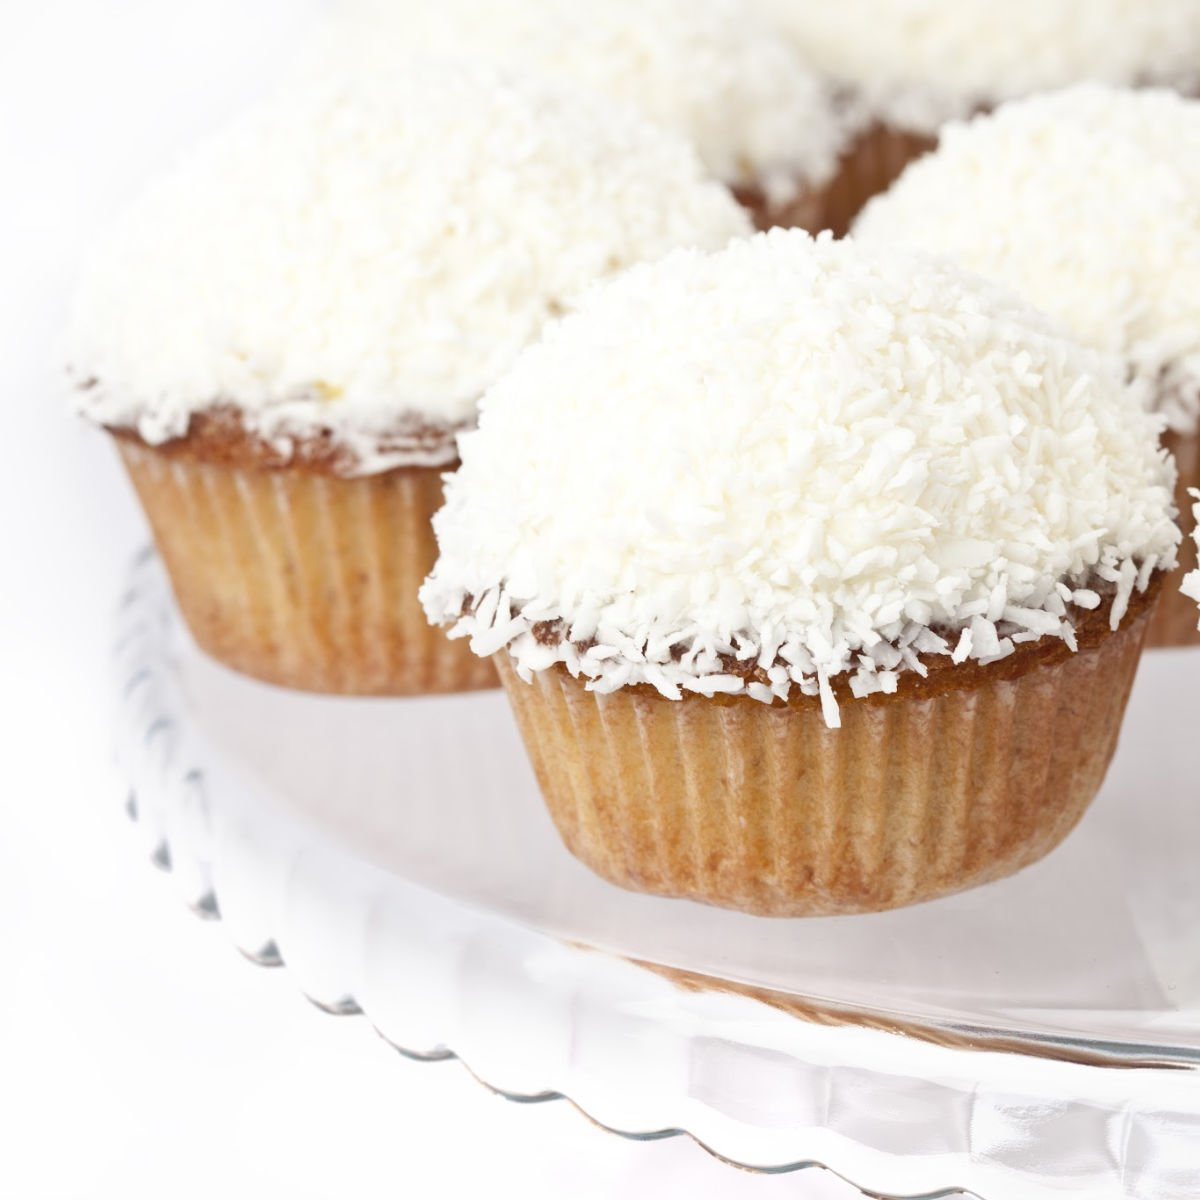 Coconut cupcakes on a plate.